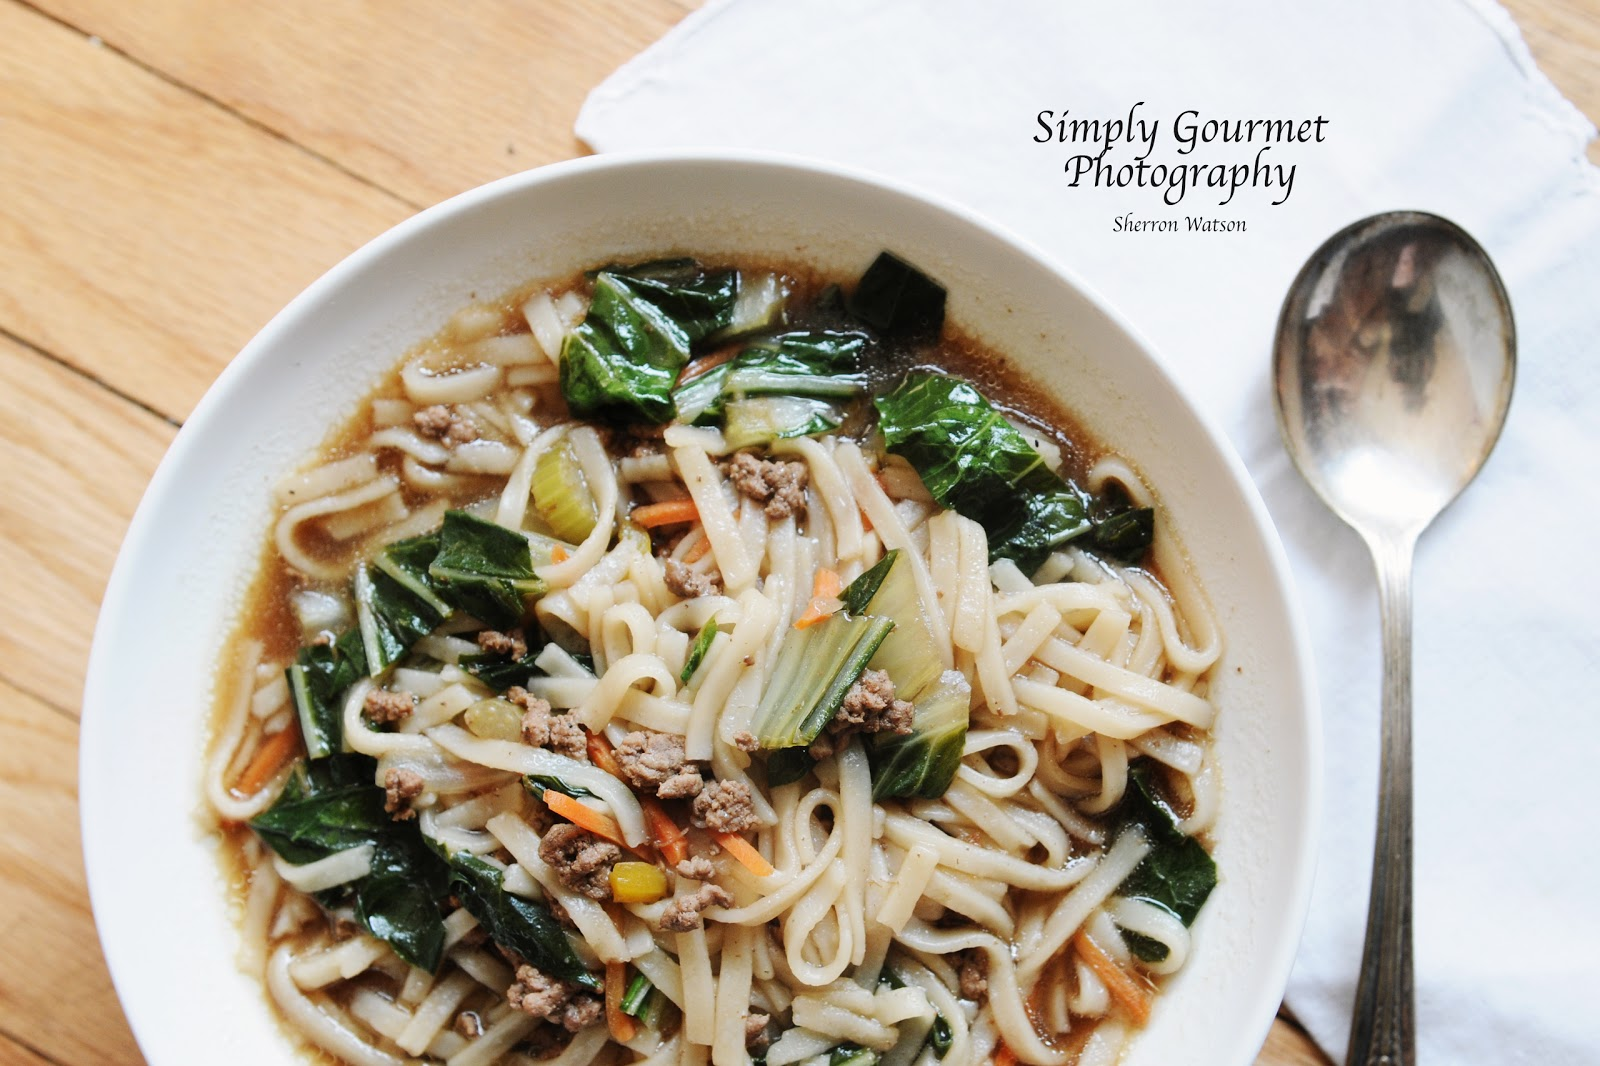 Simply Gourmet: 126. Beef Noodle Soup